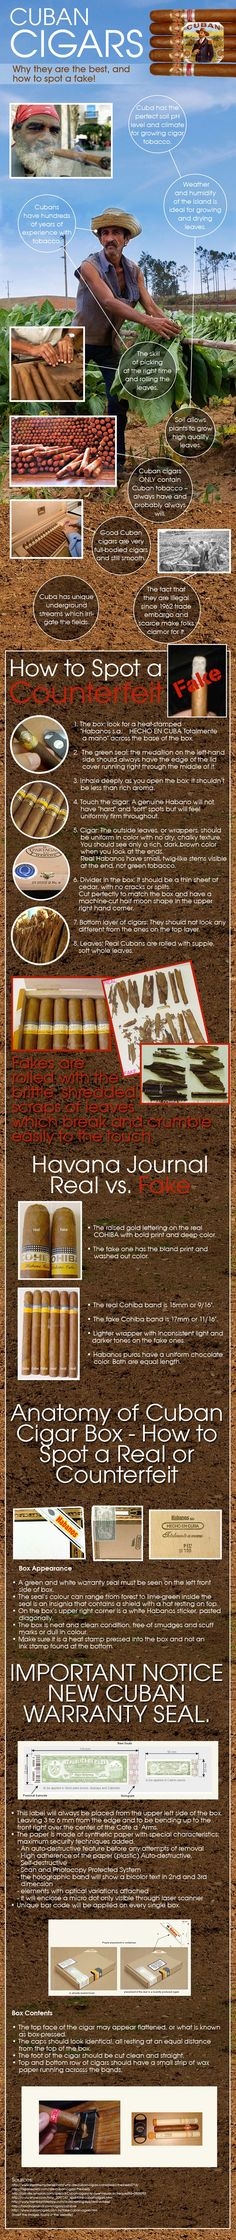 Travel 2 the Caribbean Blog: Why Cuban Cigars Are The Best, How to Spot a Fake